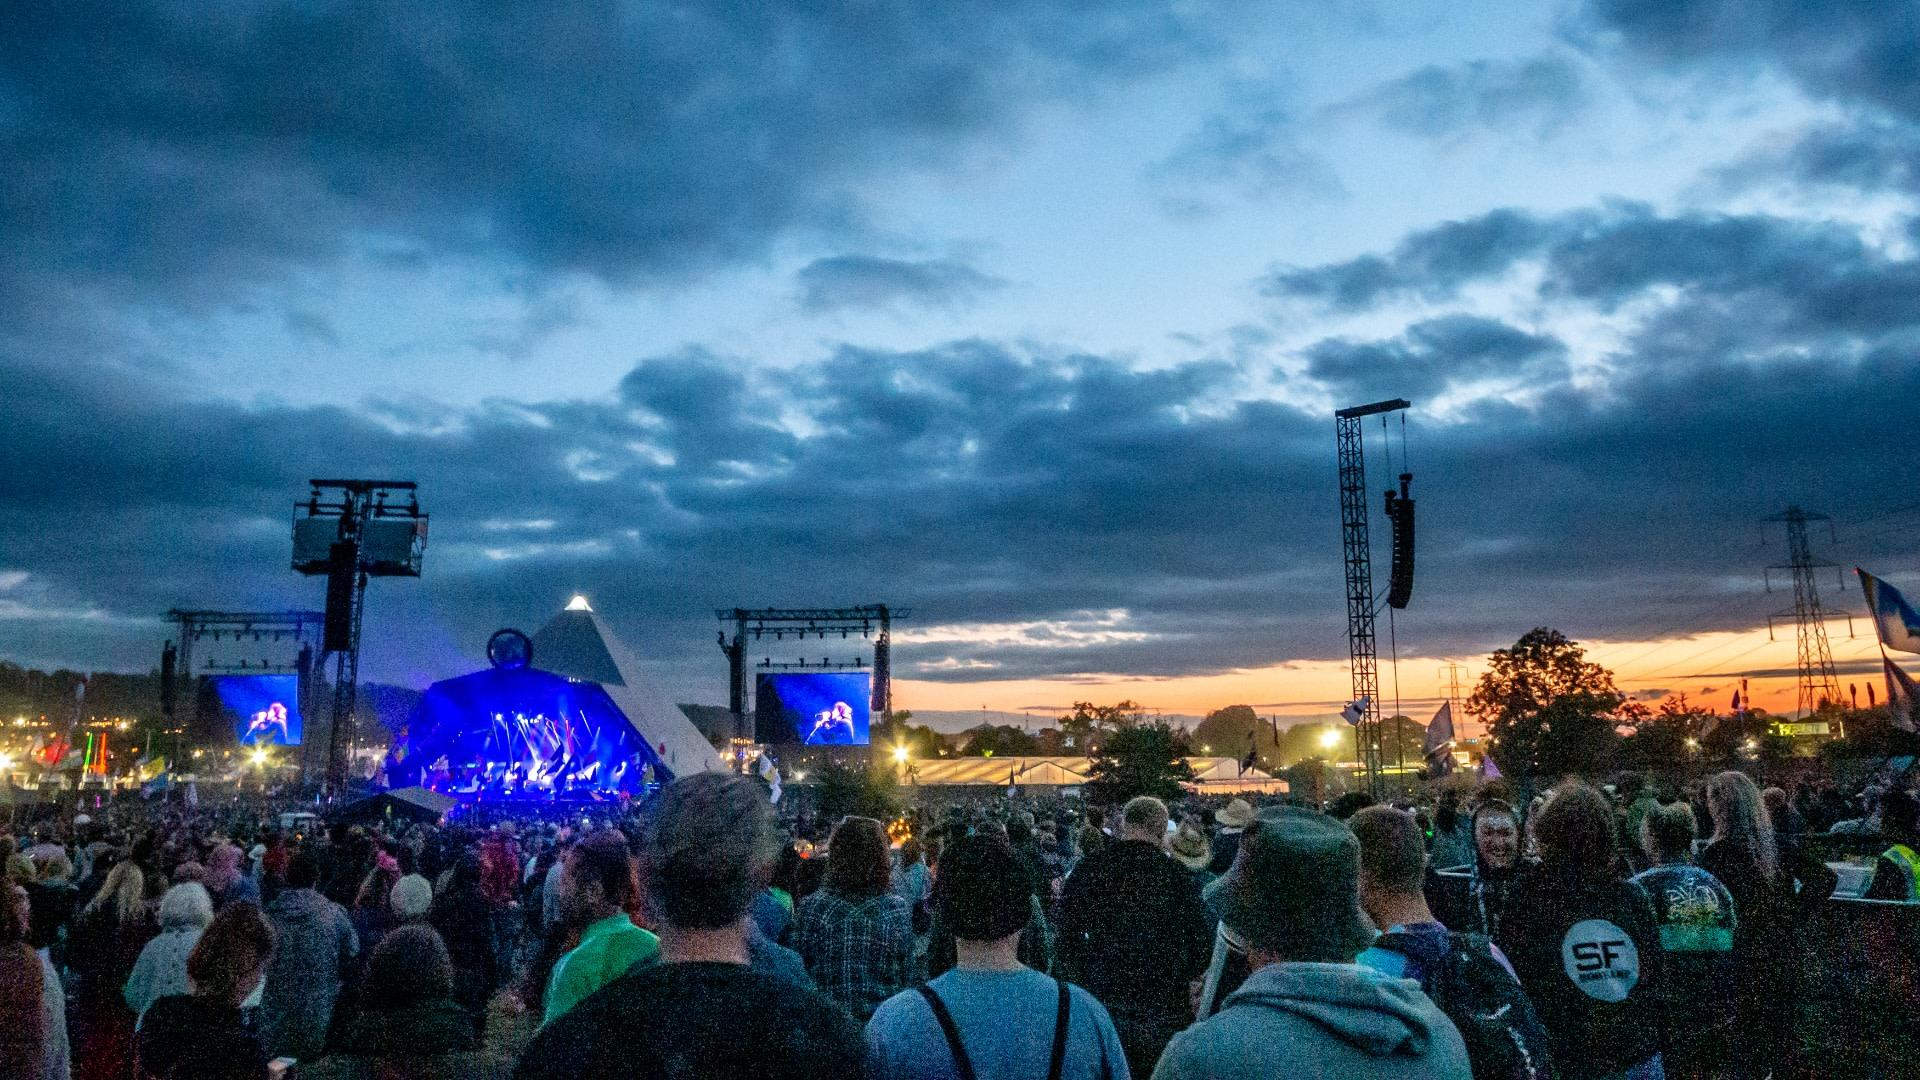 Glastonbury Festival Canceled for Second Year in a Row Due to Pandemic Concerns